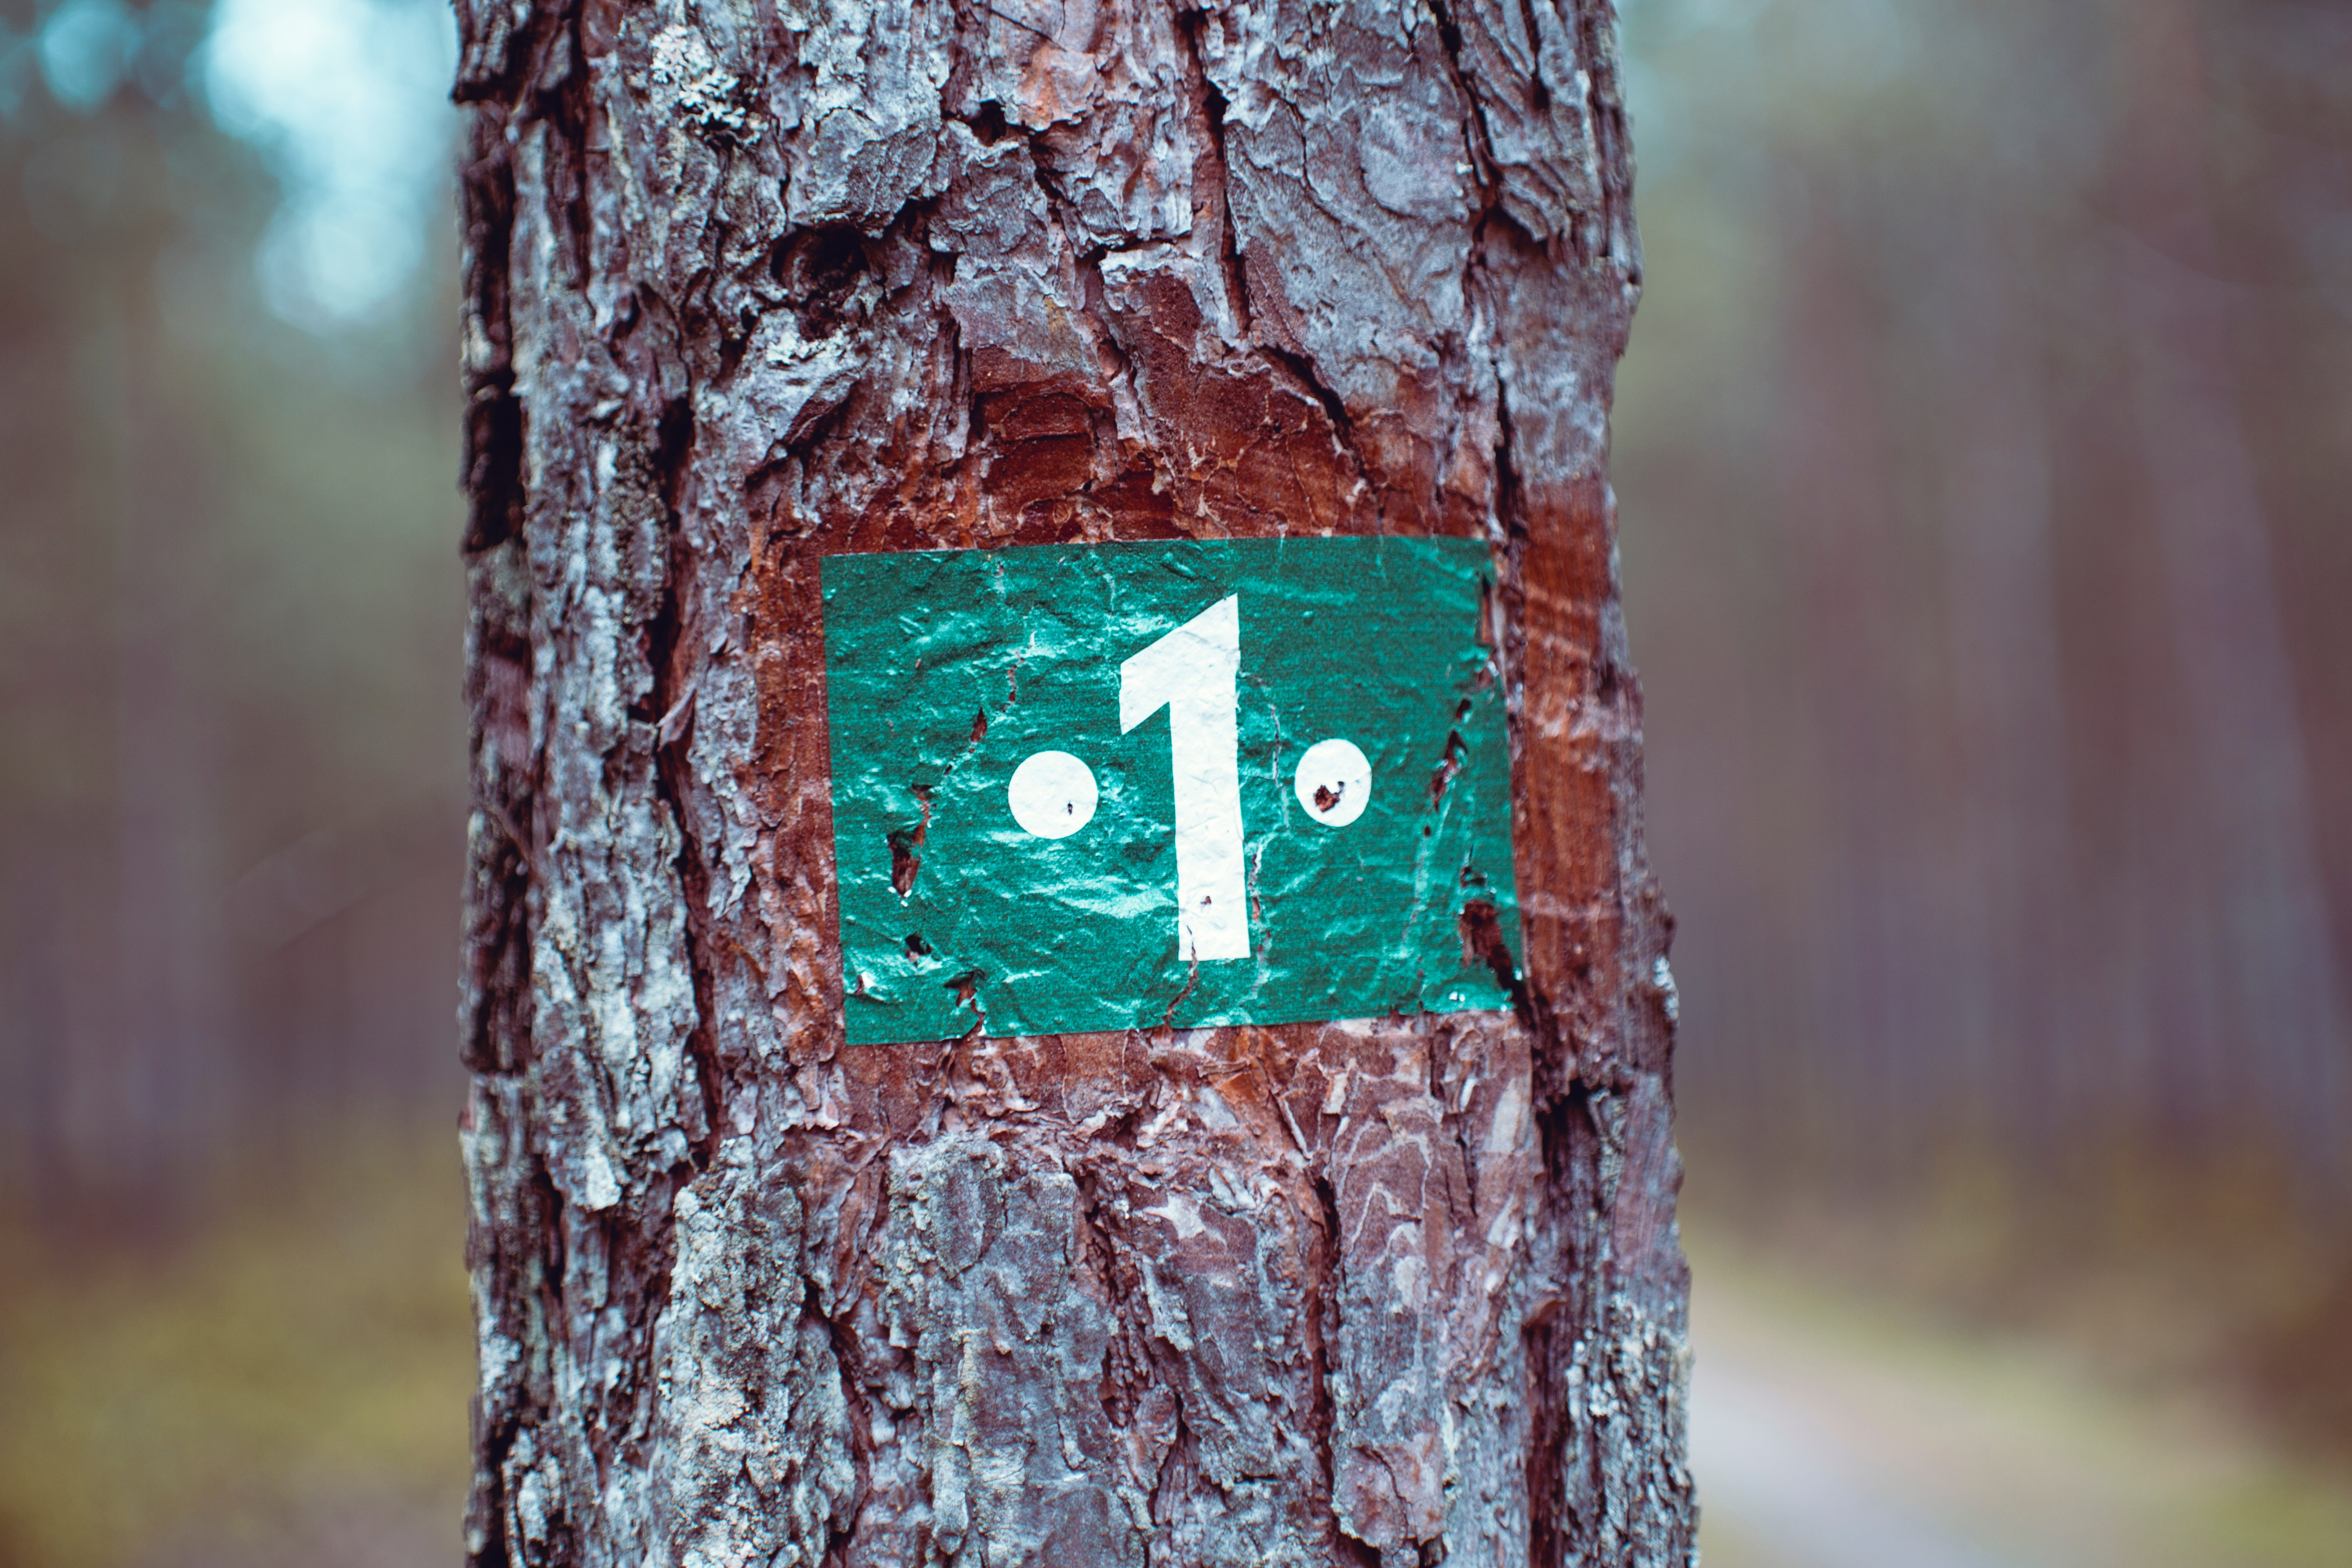 A white number 1 painted on to a green background on a tree trunk.